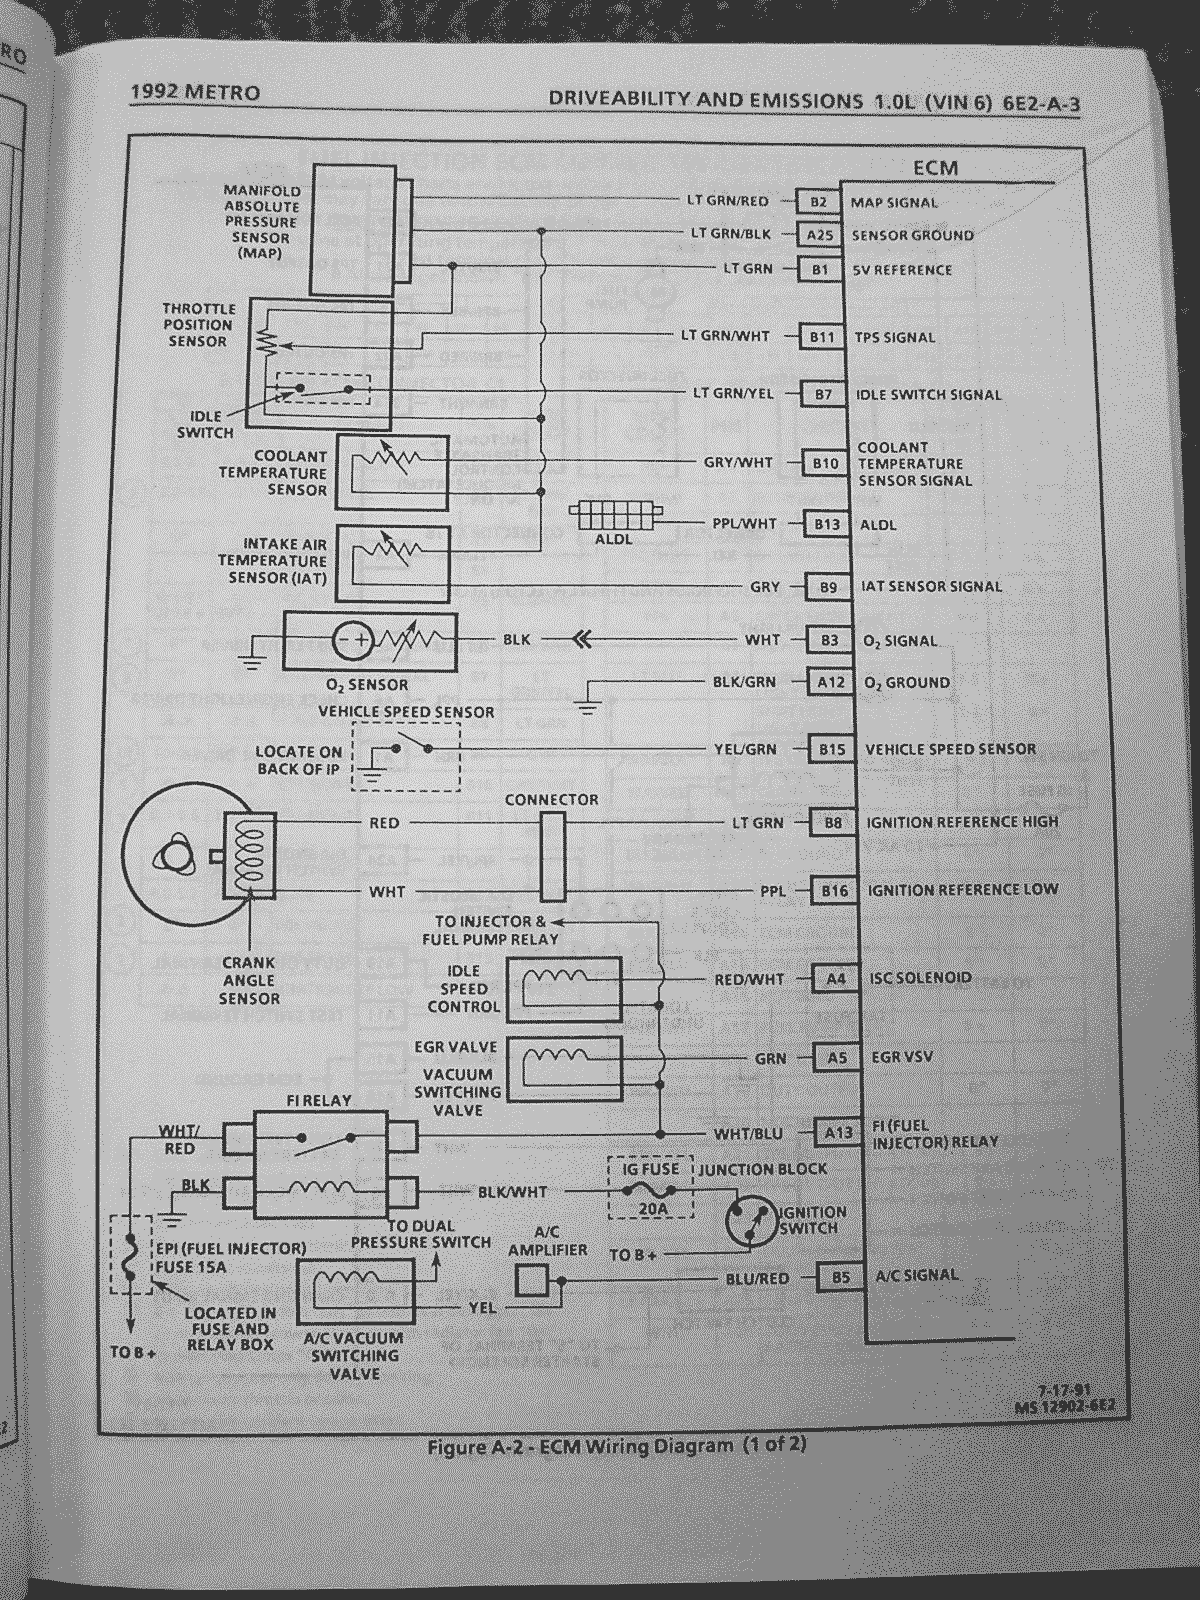 geo metro and suzuki swift wiring diagrams com 92 94 metro 3 cylinder ecu pinouts